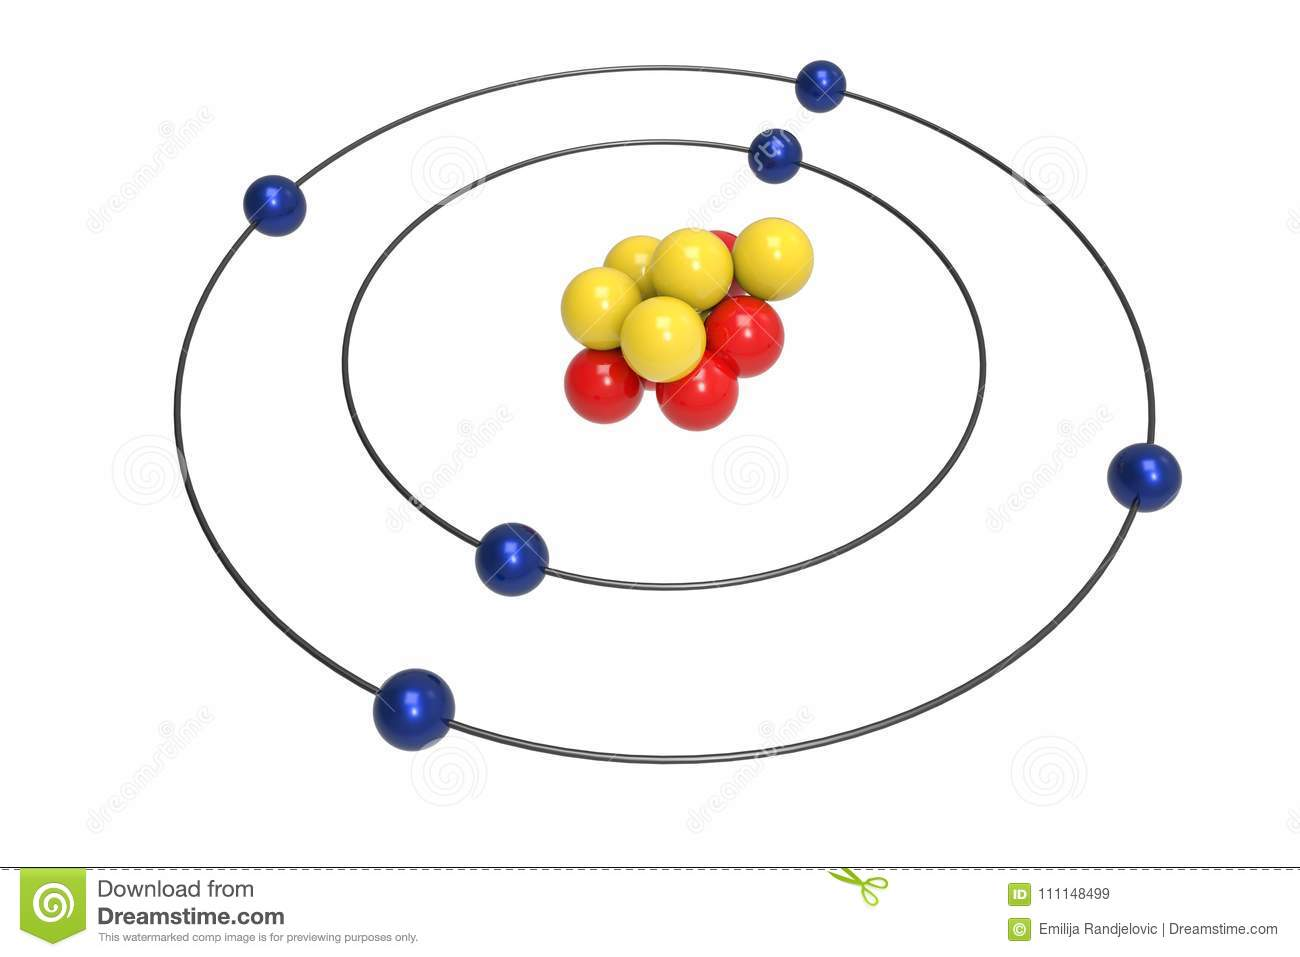 hight resolution of bohr model of carbon atom with proton neutron and electron